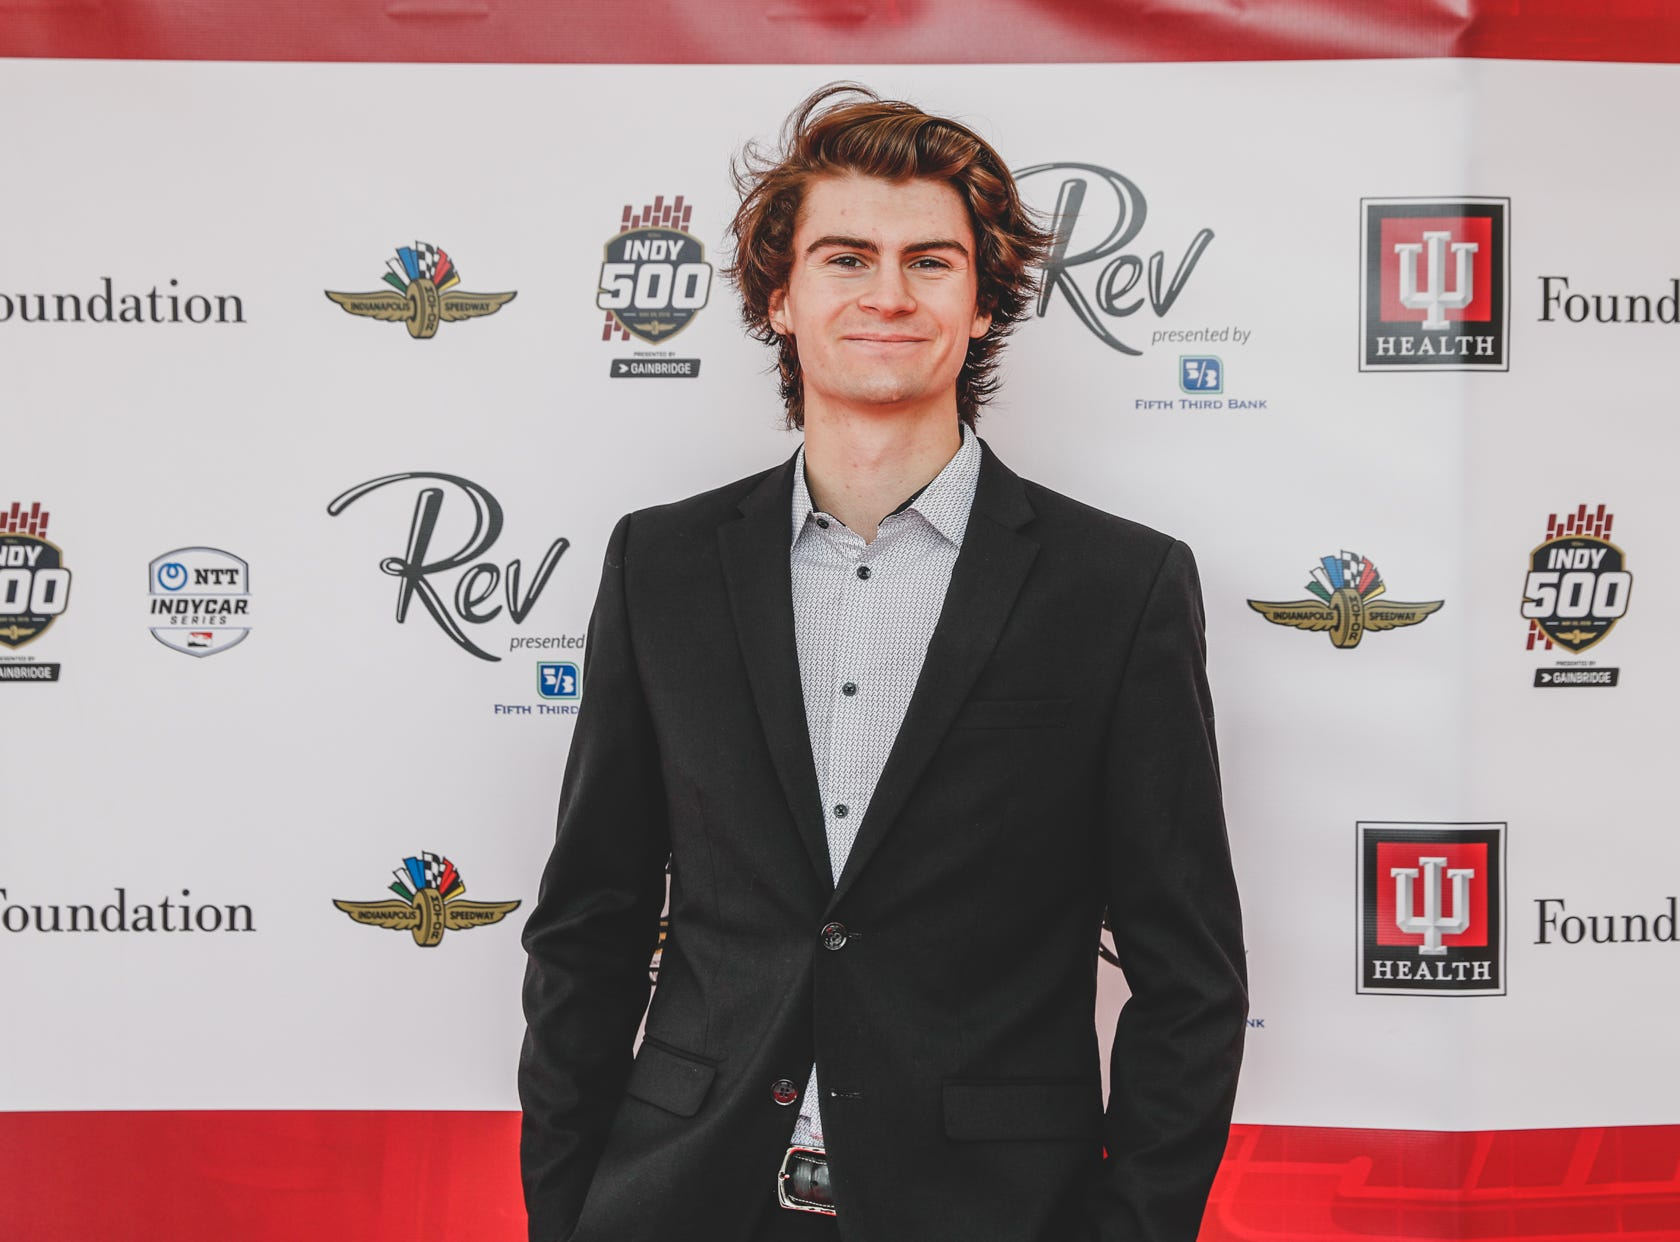 IndyCar driver Colton Hereta walks the red carpet at the Rev Indy fundraiser, held at the Indianapolis Motor Speedway on Saturday, May 4, 2019. Funds raised support the IU Health Foundation statewide and the IU Health Emergency Medical Center at IMS.